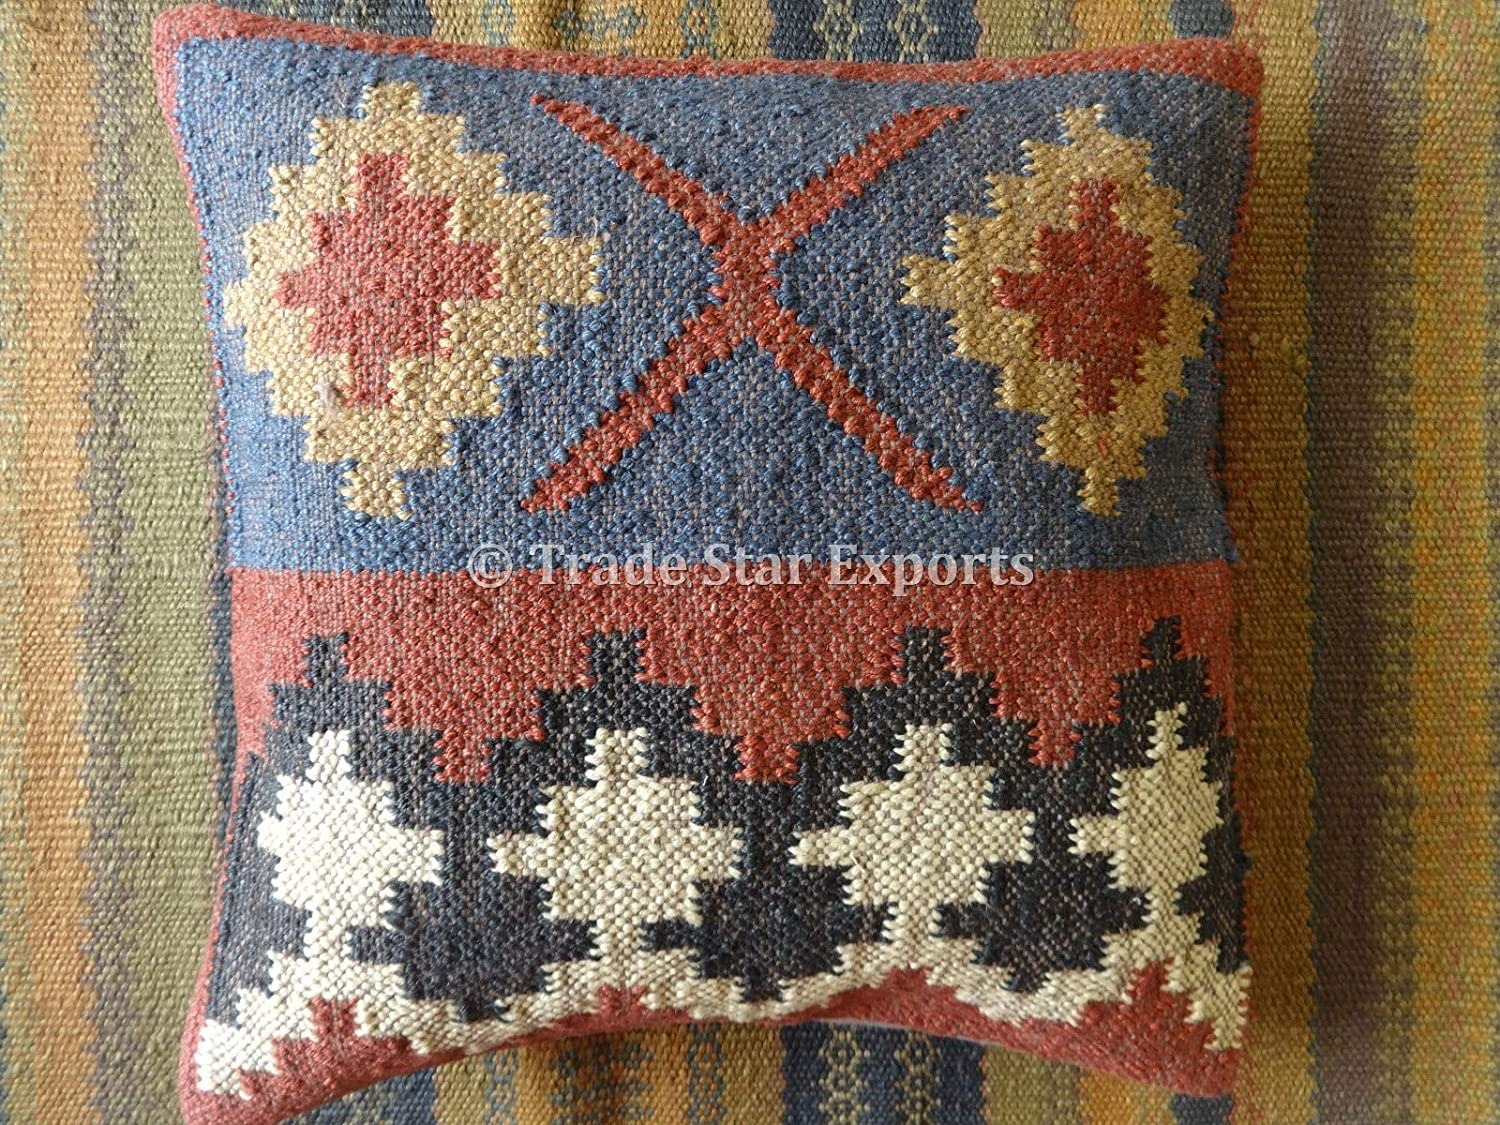 Trade Star Exports Kilim Pillow, Indian Cushion Cover 18x18, Jute Throw Pillow Cases, Decorative Handwoven Cushions, Boho Pillow Shams